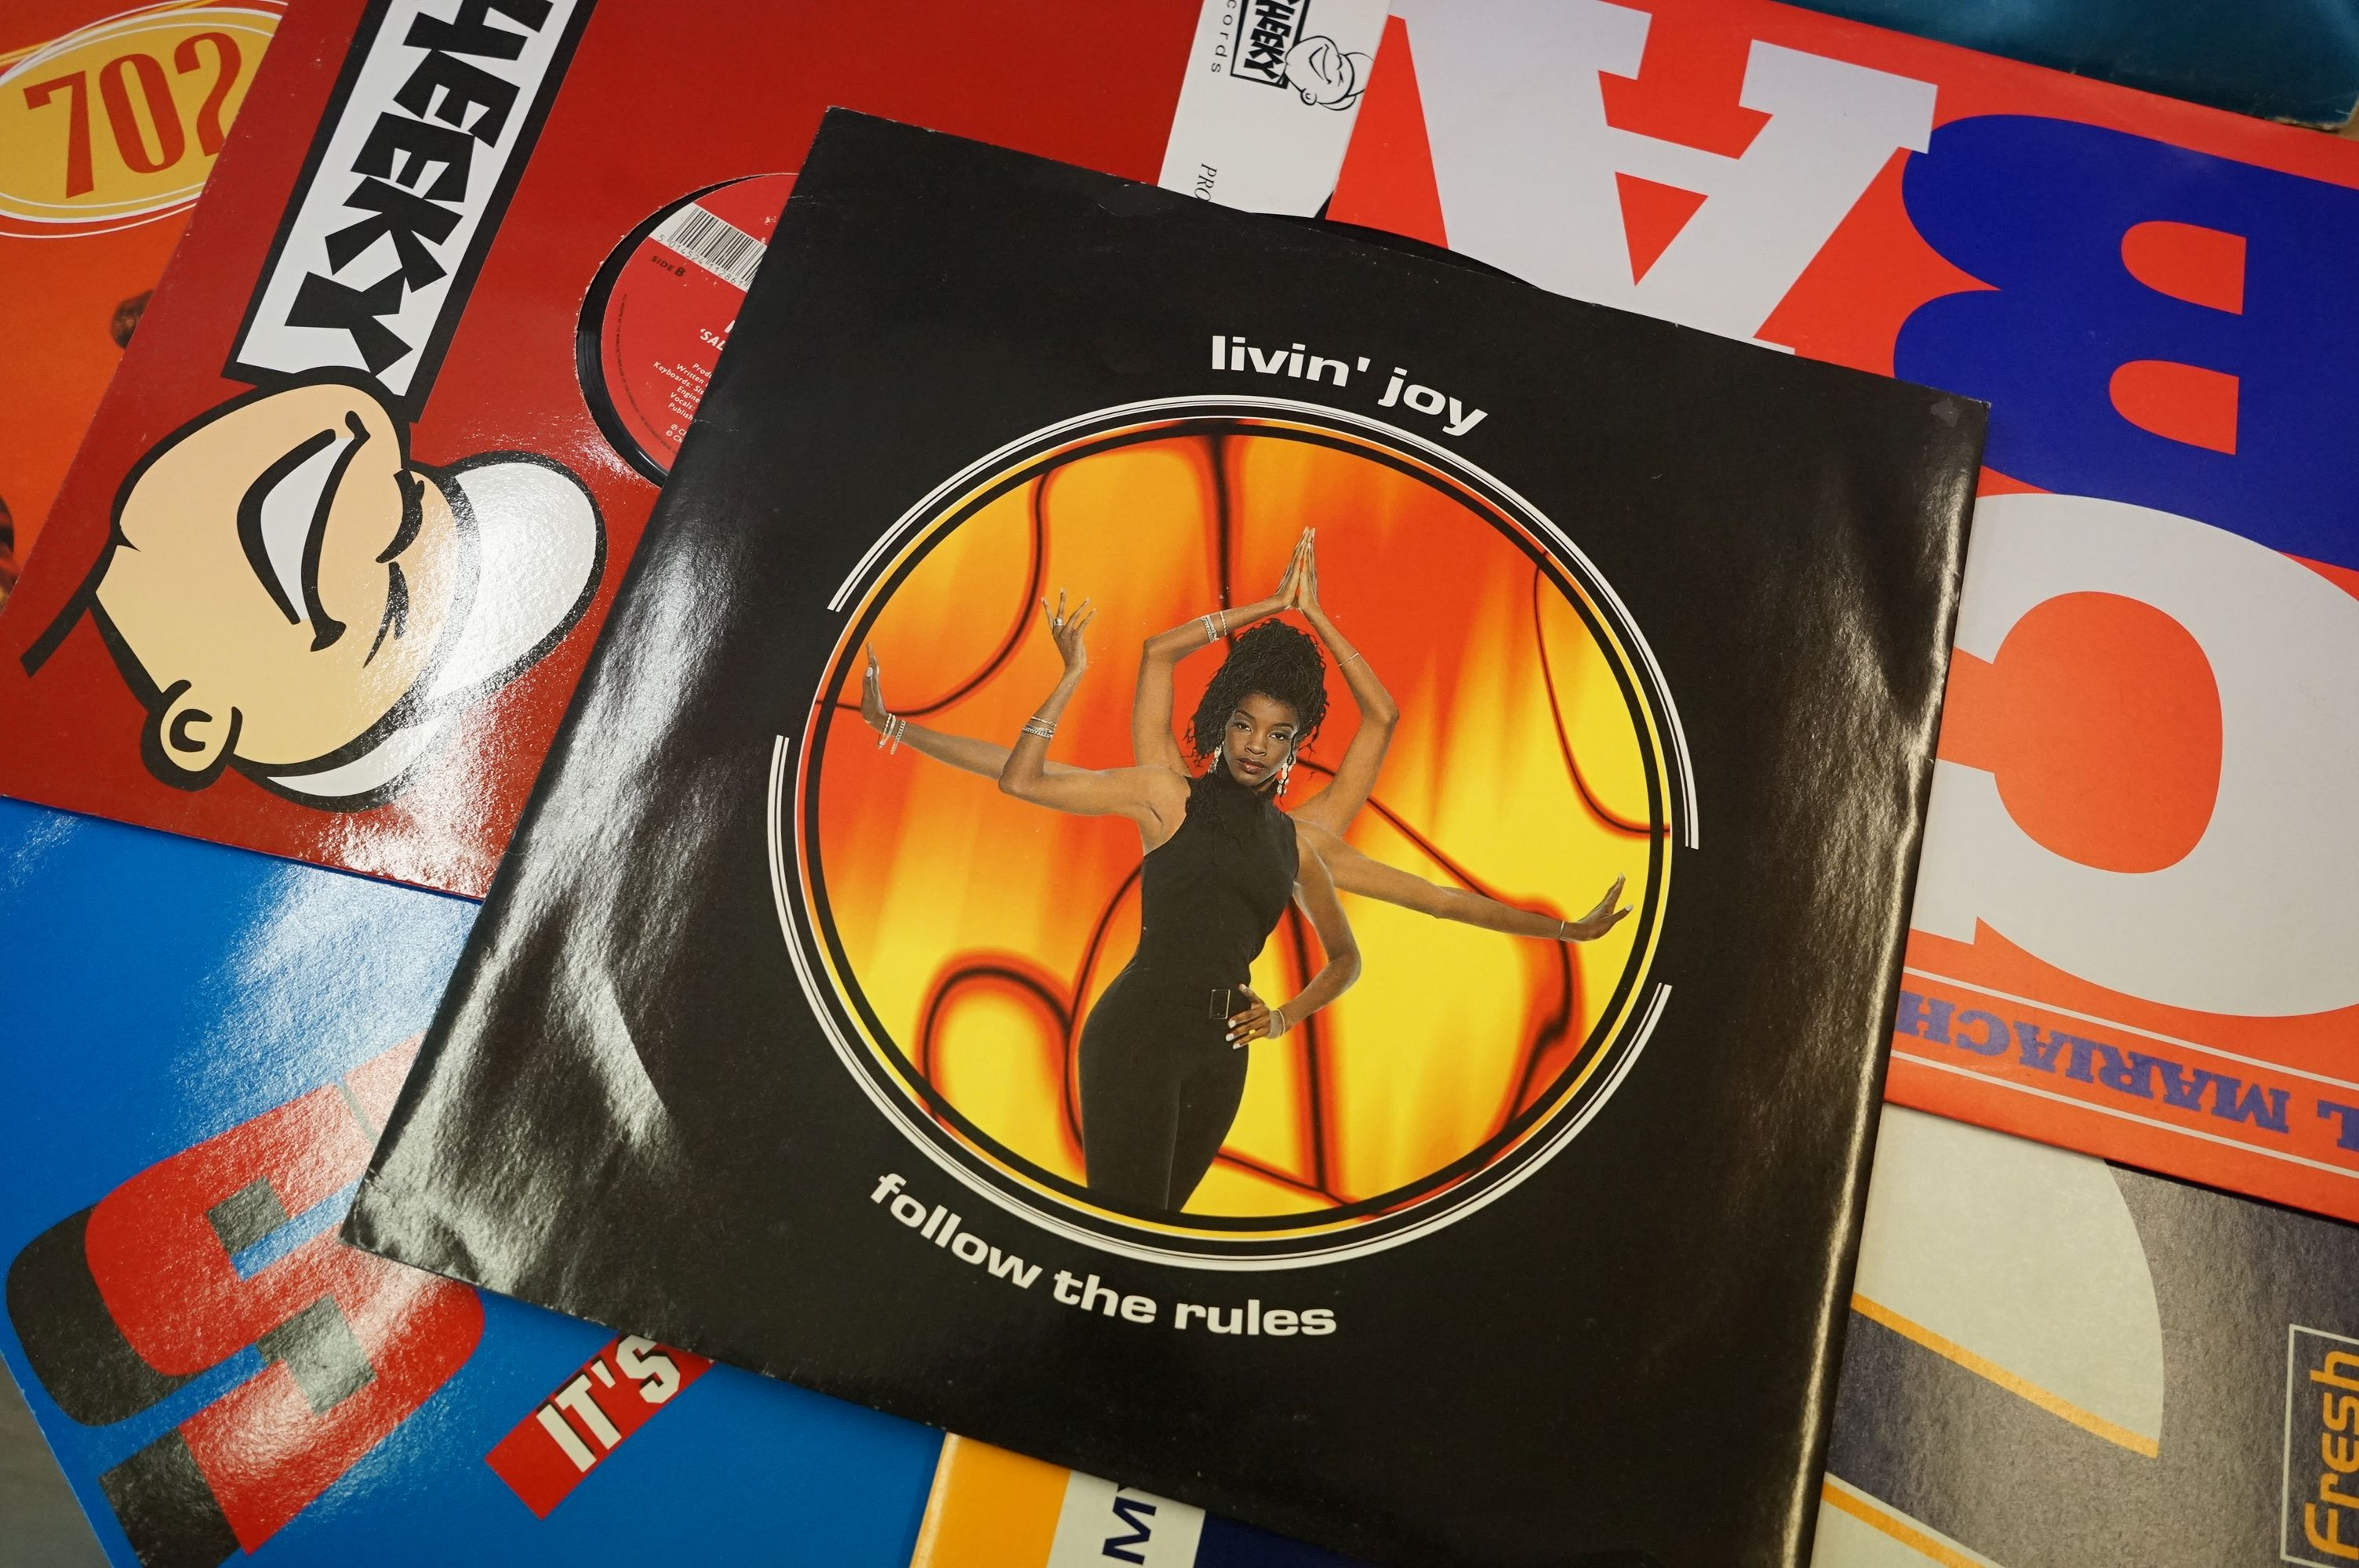 Vinyl - Large collection of LPs spanning the genres and decades (four boxes) - Image 5 of 8